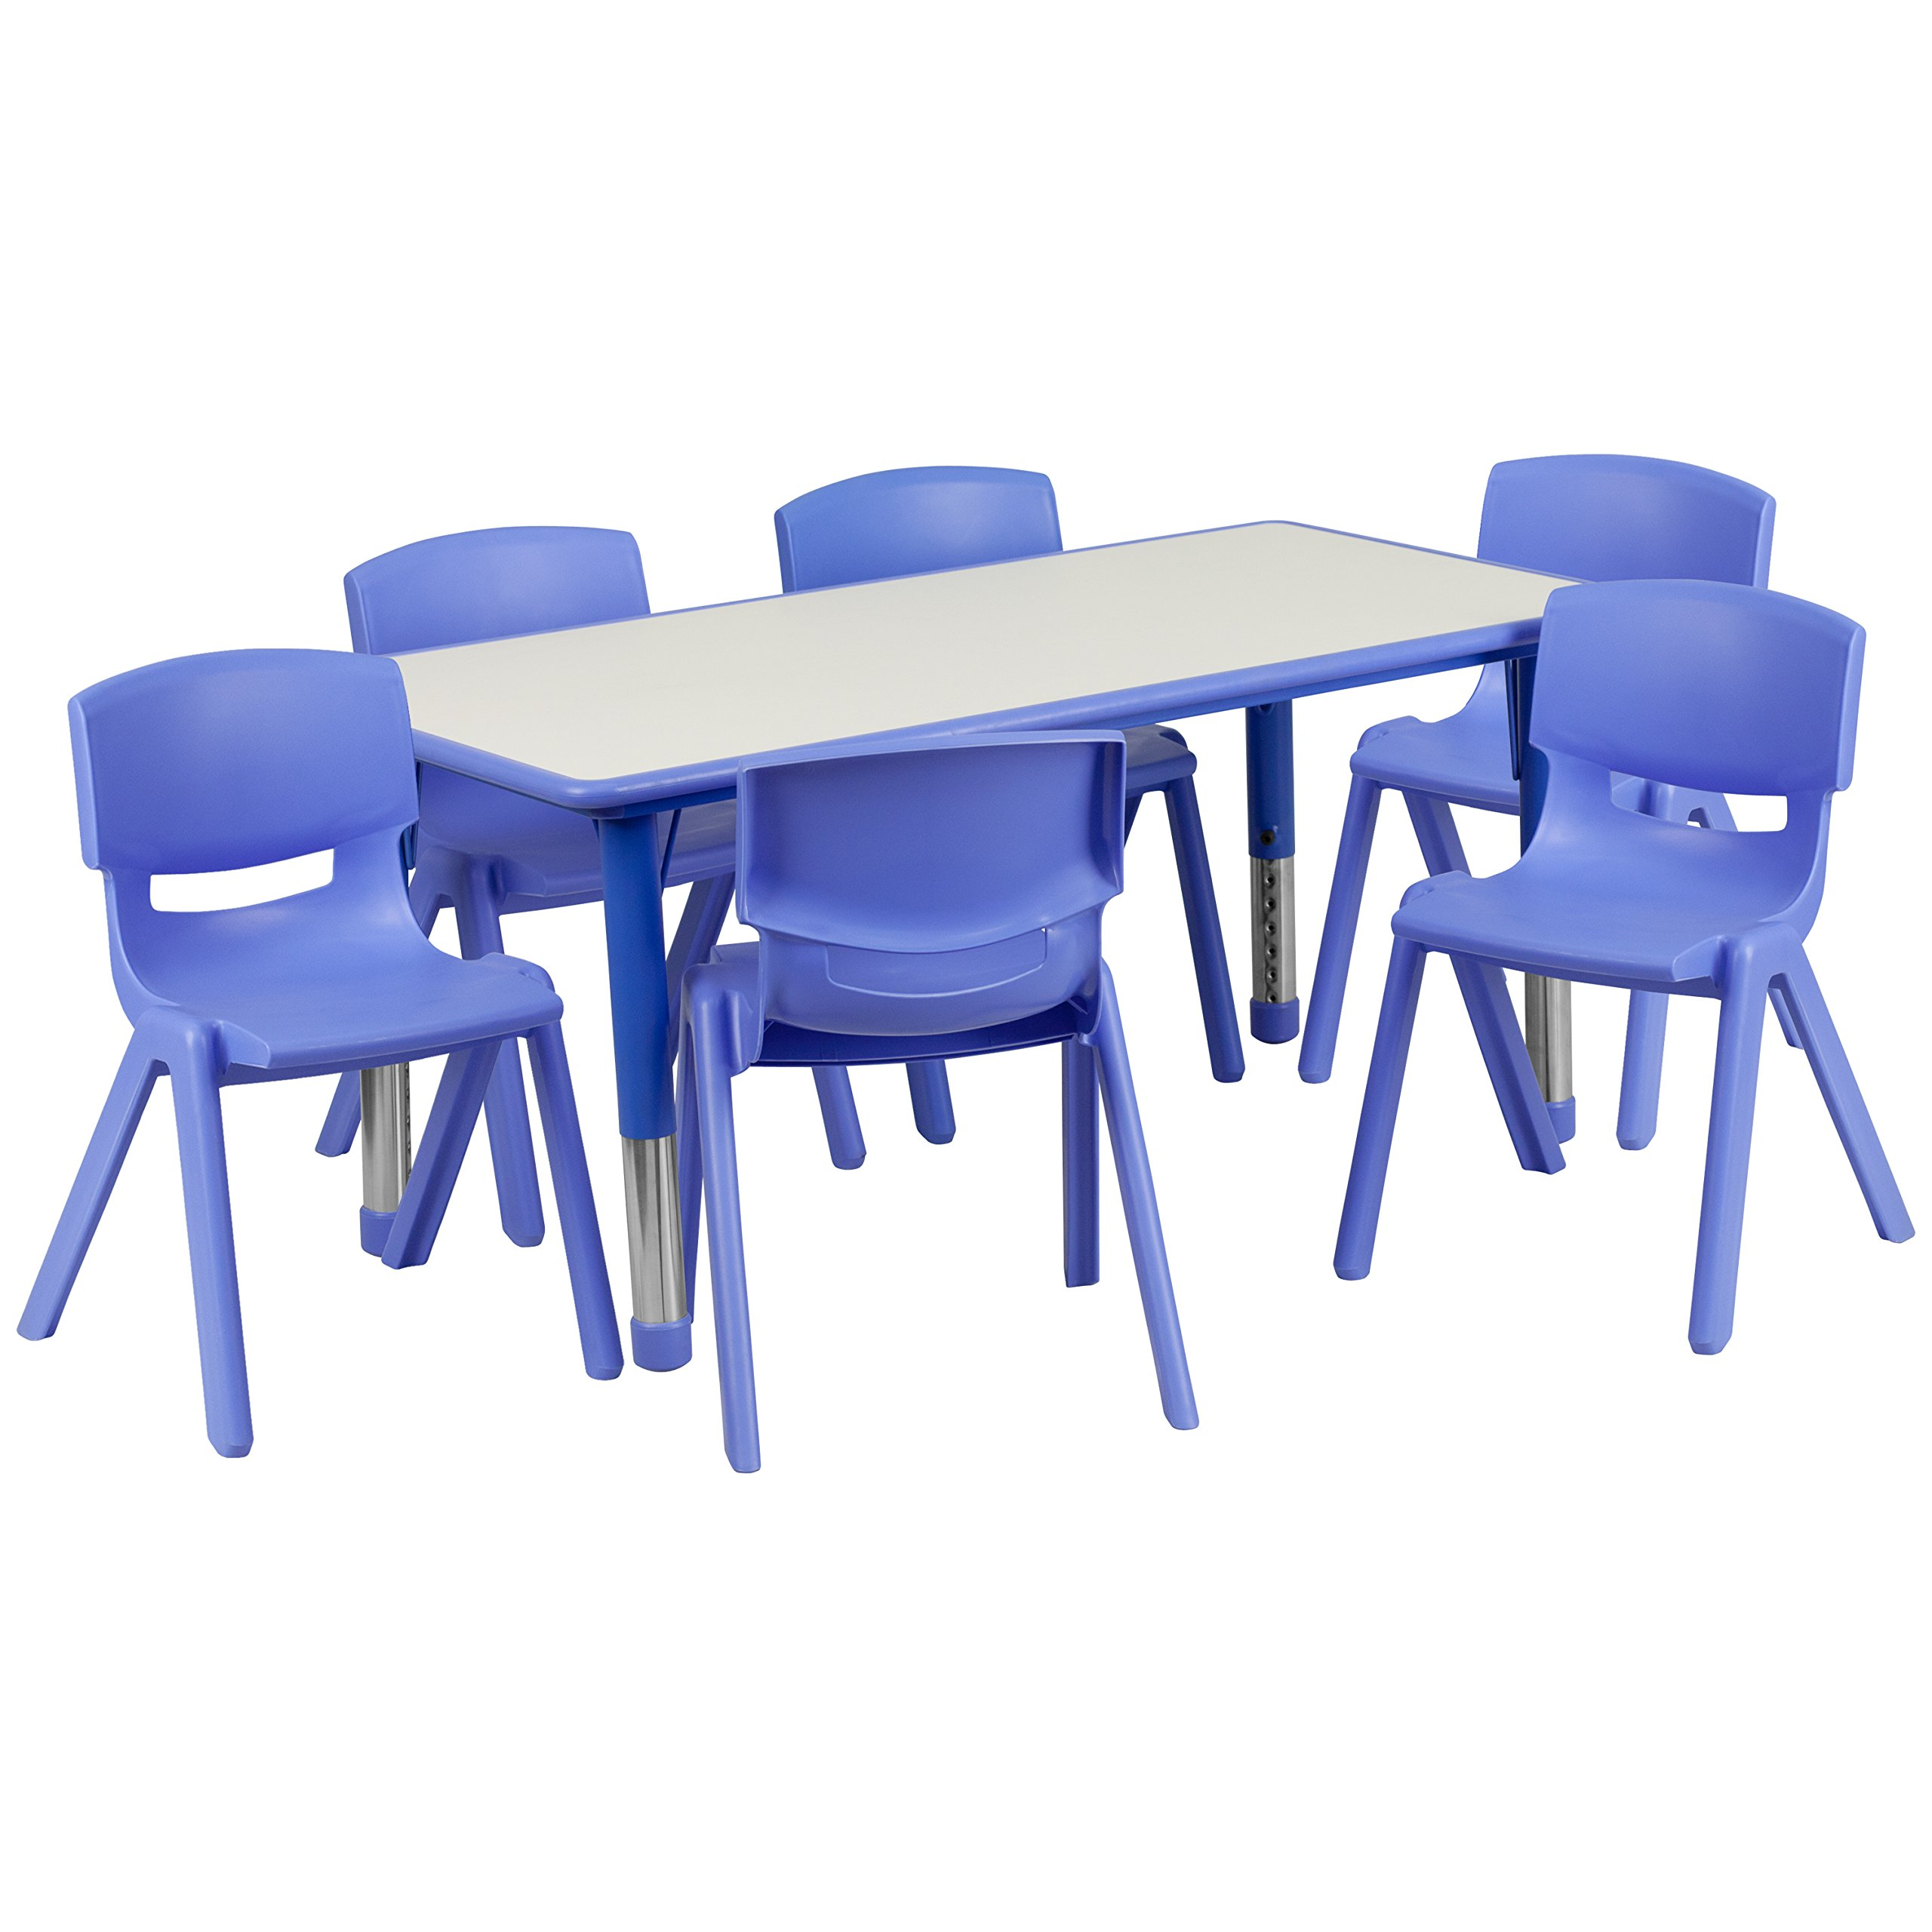 Flash Furniture 23.625''W x 47.25''L Rectangular Blue Plastic Height Adjustable Activity Table Set with 6 Chairs by Flash Furniture